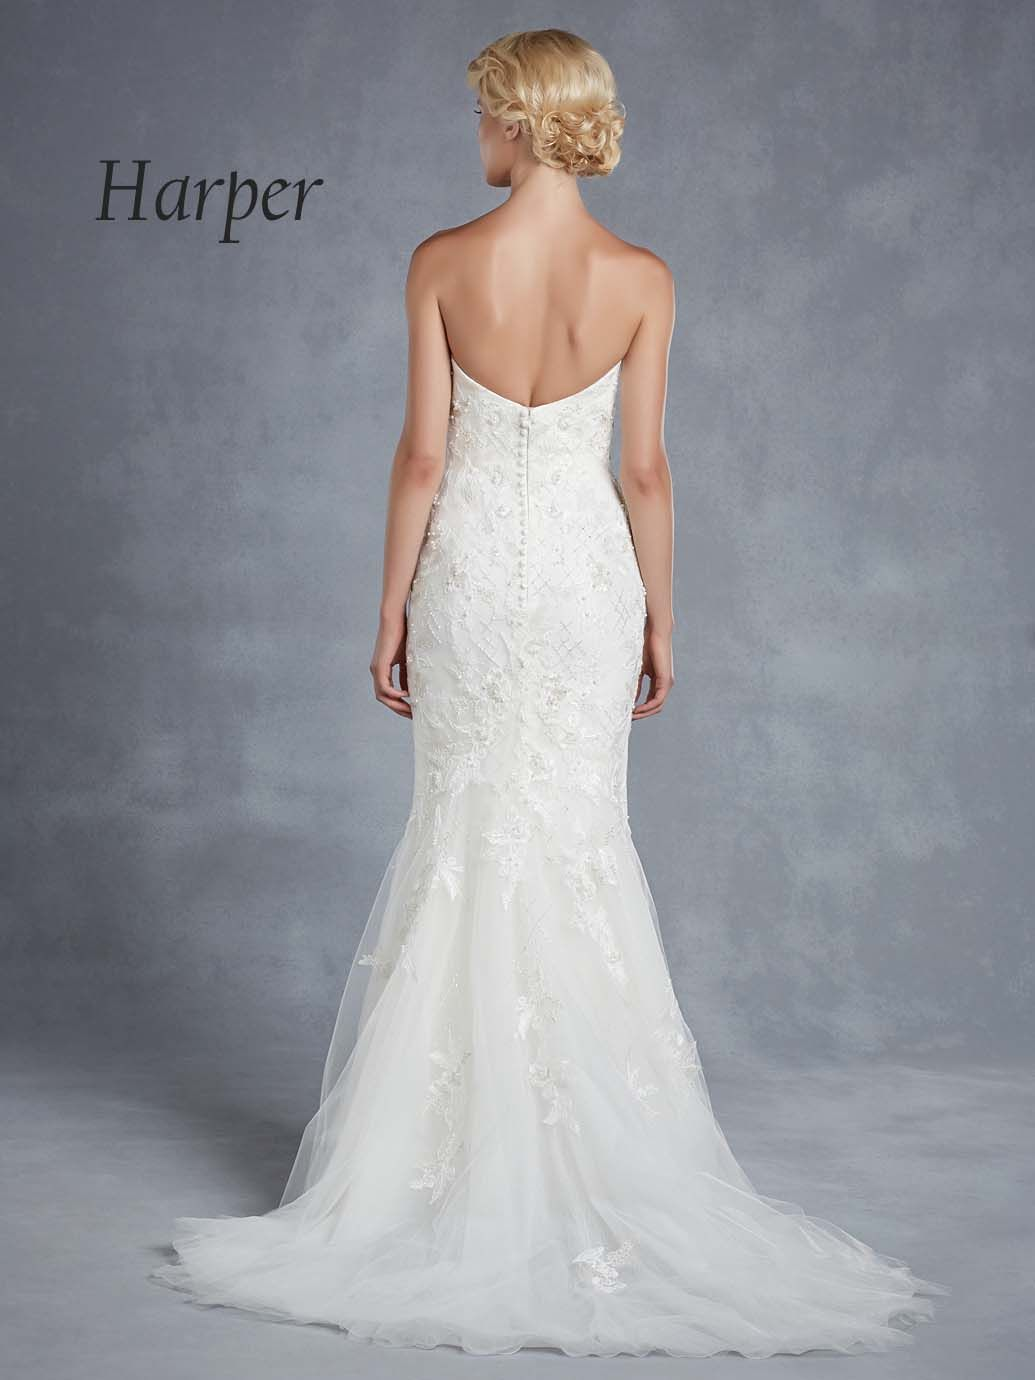 HARPER | Blue by Enzoani : The 2015 Collection | Pinterest | Wedding ...